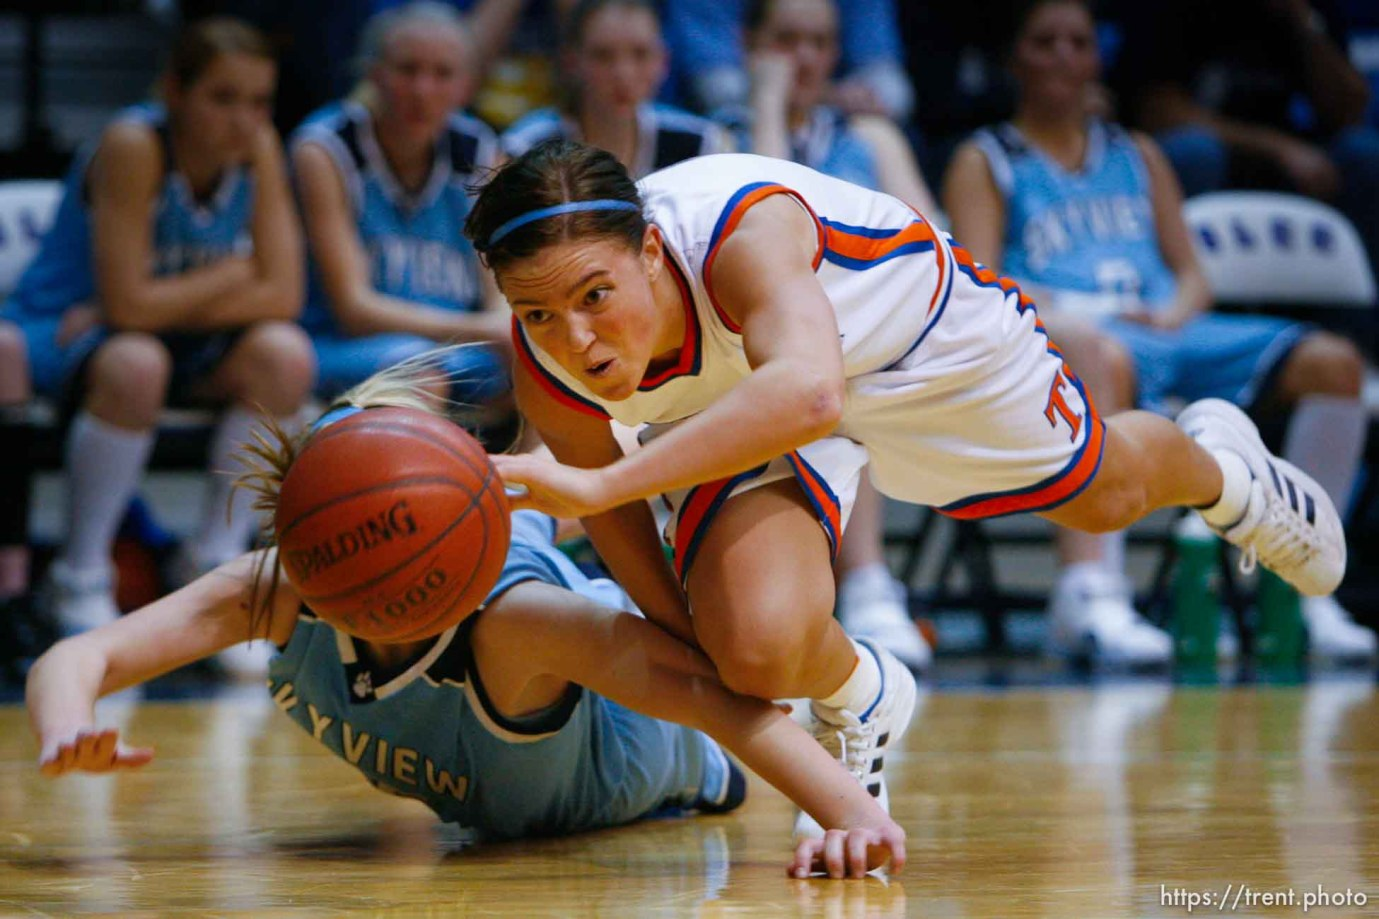 Timpview's Gabrielle Pinegar (right) dives for the loose ball, knocking it away from Sky View's Liz Malmberg. Taylorsville - Timpview vs. Sky View High School, 4A Girls State Basketball Championships at Salt Lake Community College.